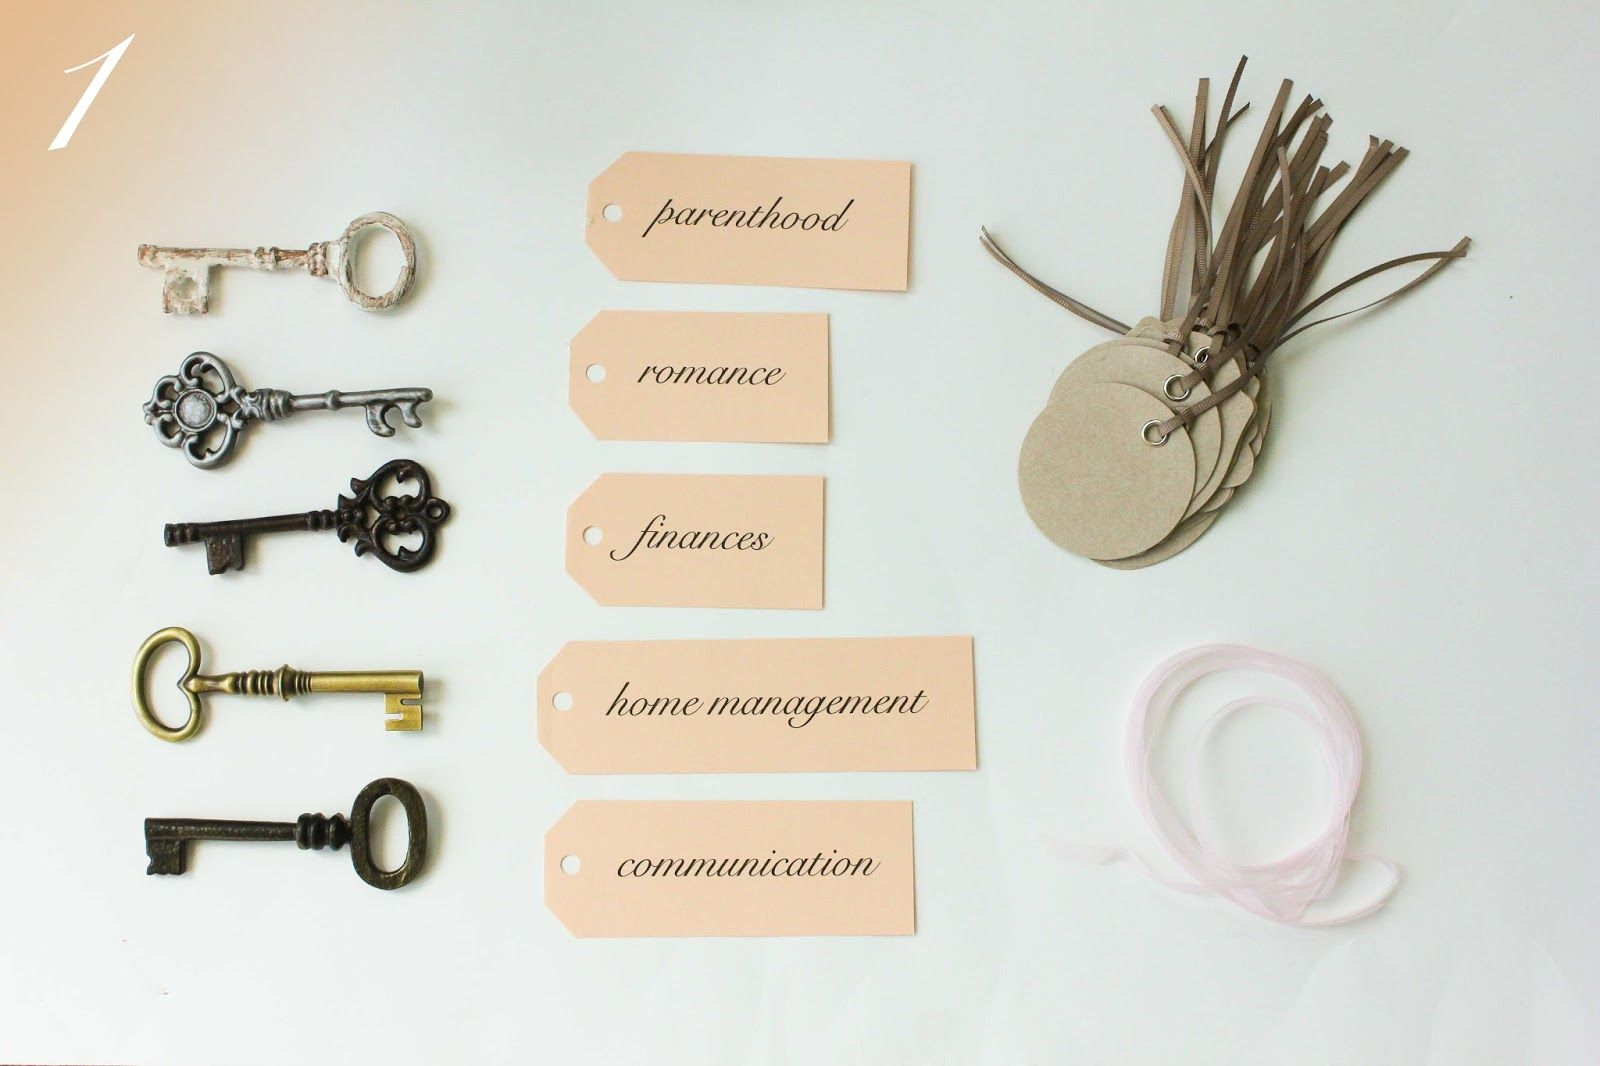 Simple bridal shower games ideas picture ideas references simple bridal shower games ideas sweet dreams are made of these keys to marriage a simple altavistaventures Gallery